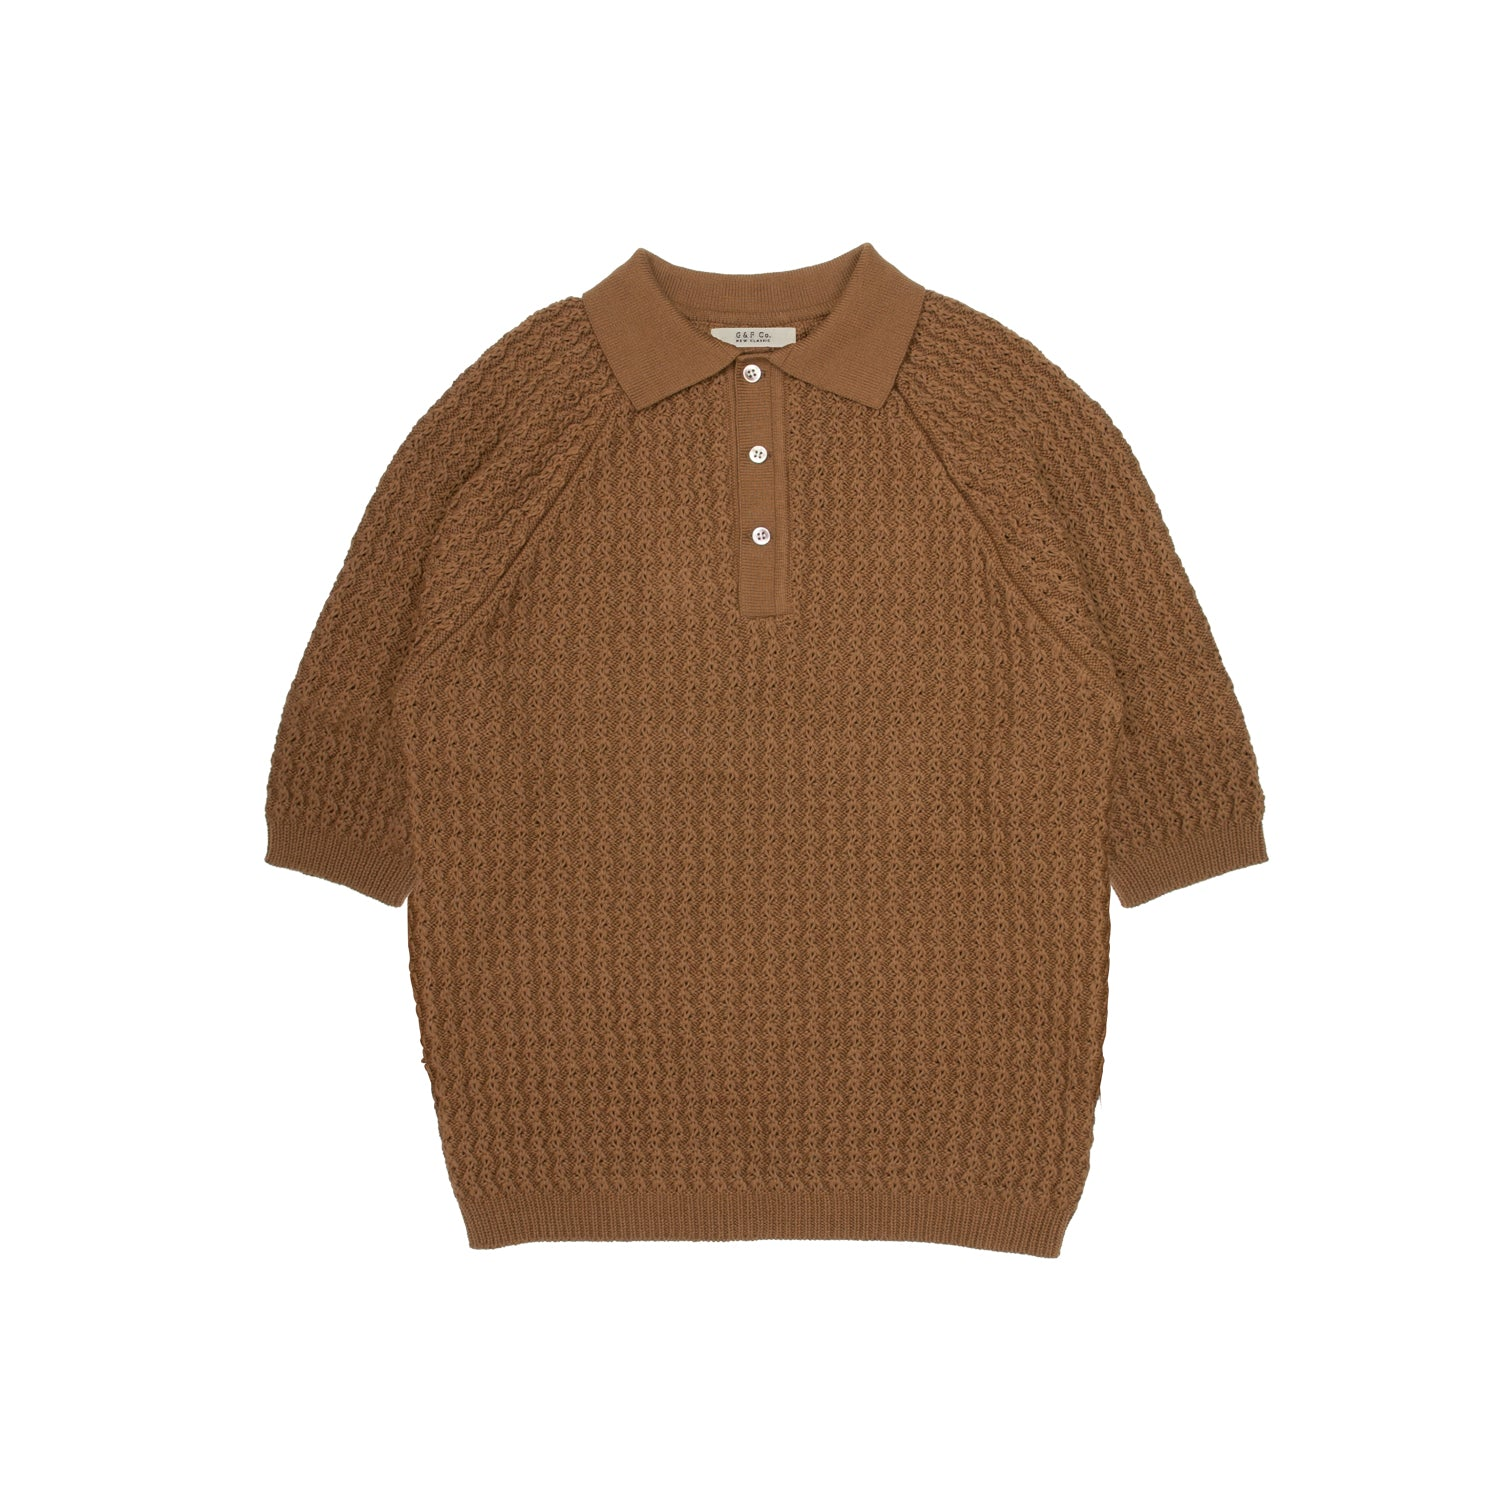 G&F Co.- KNIT POLO SHORT SLEEVE SHIRT_BROWN